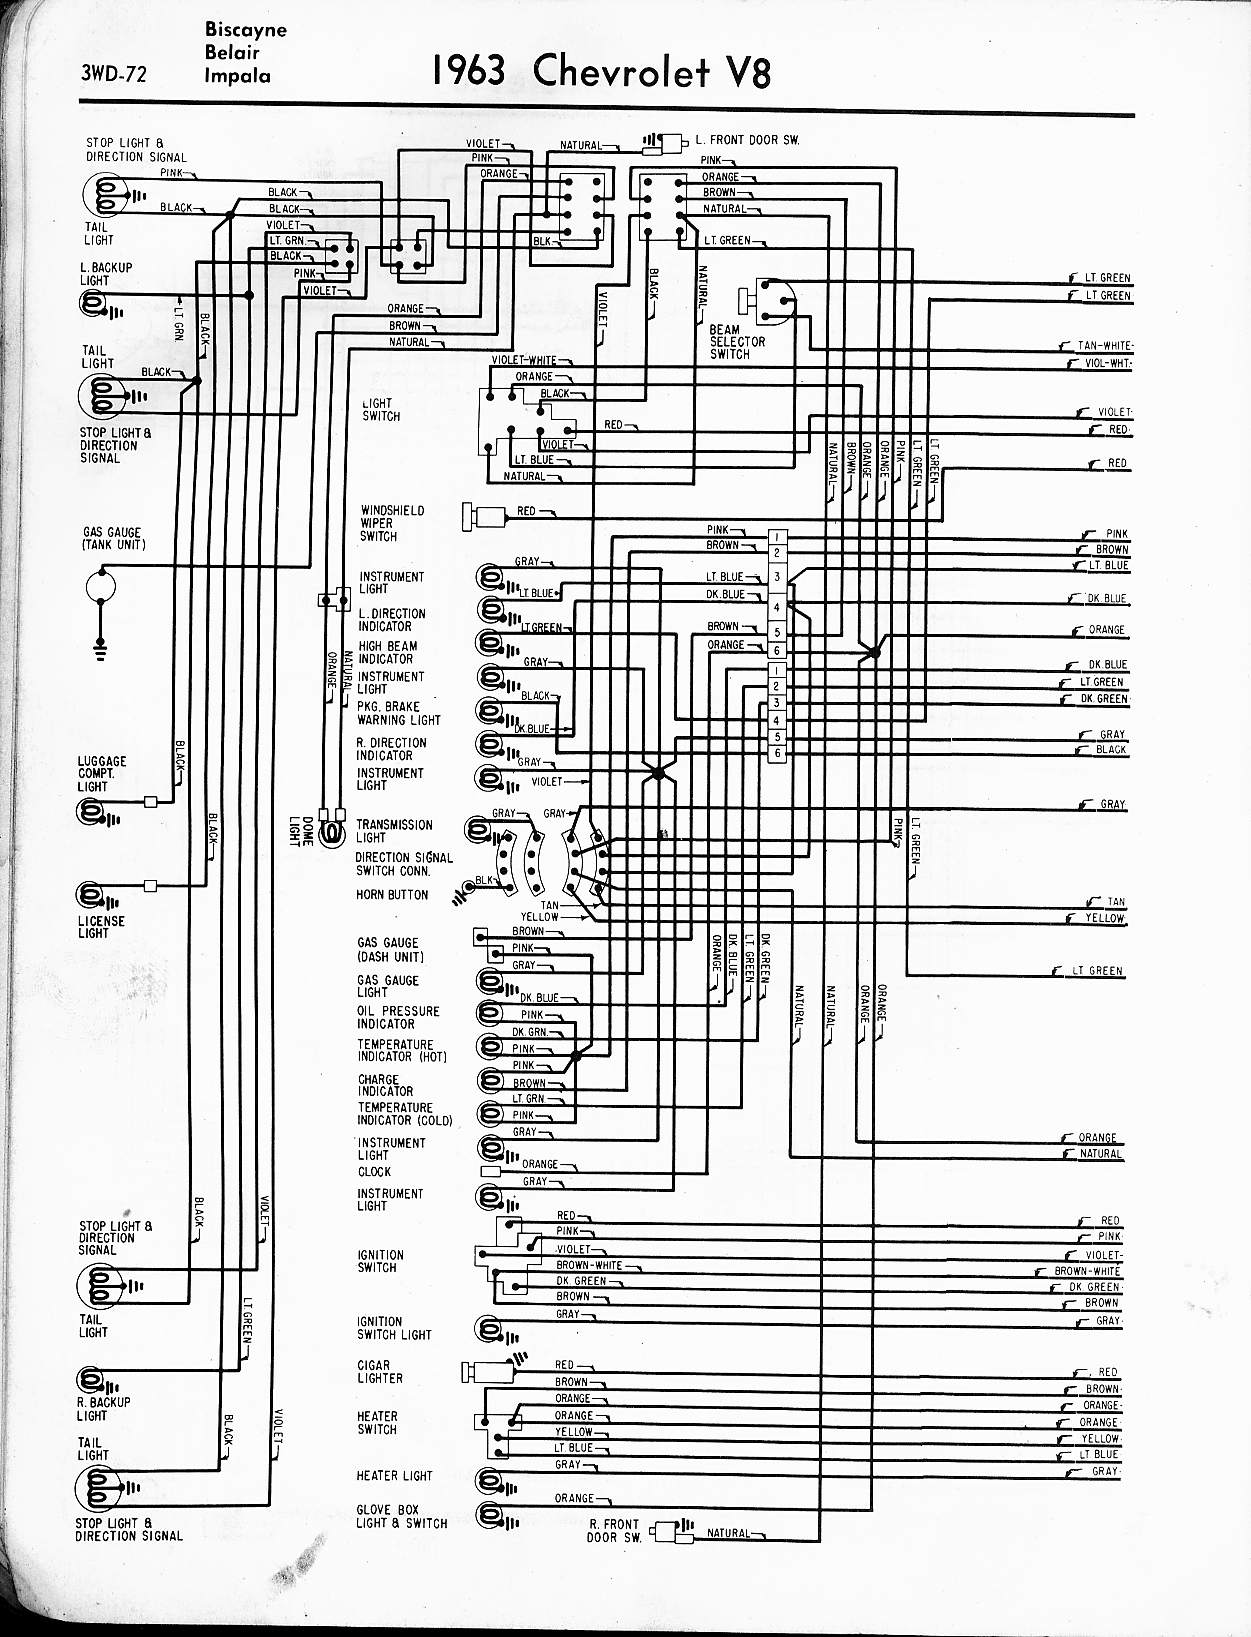 1962 corvette headlight switch wiring diagram